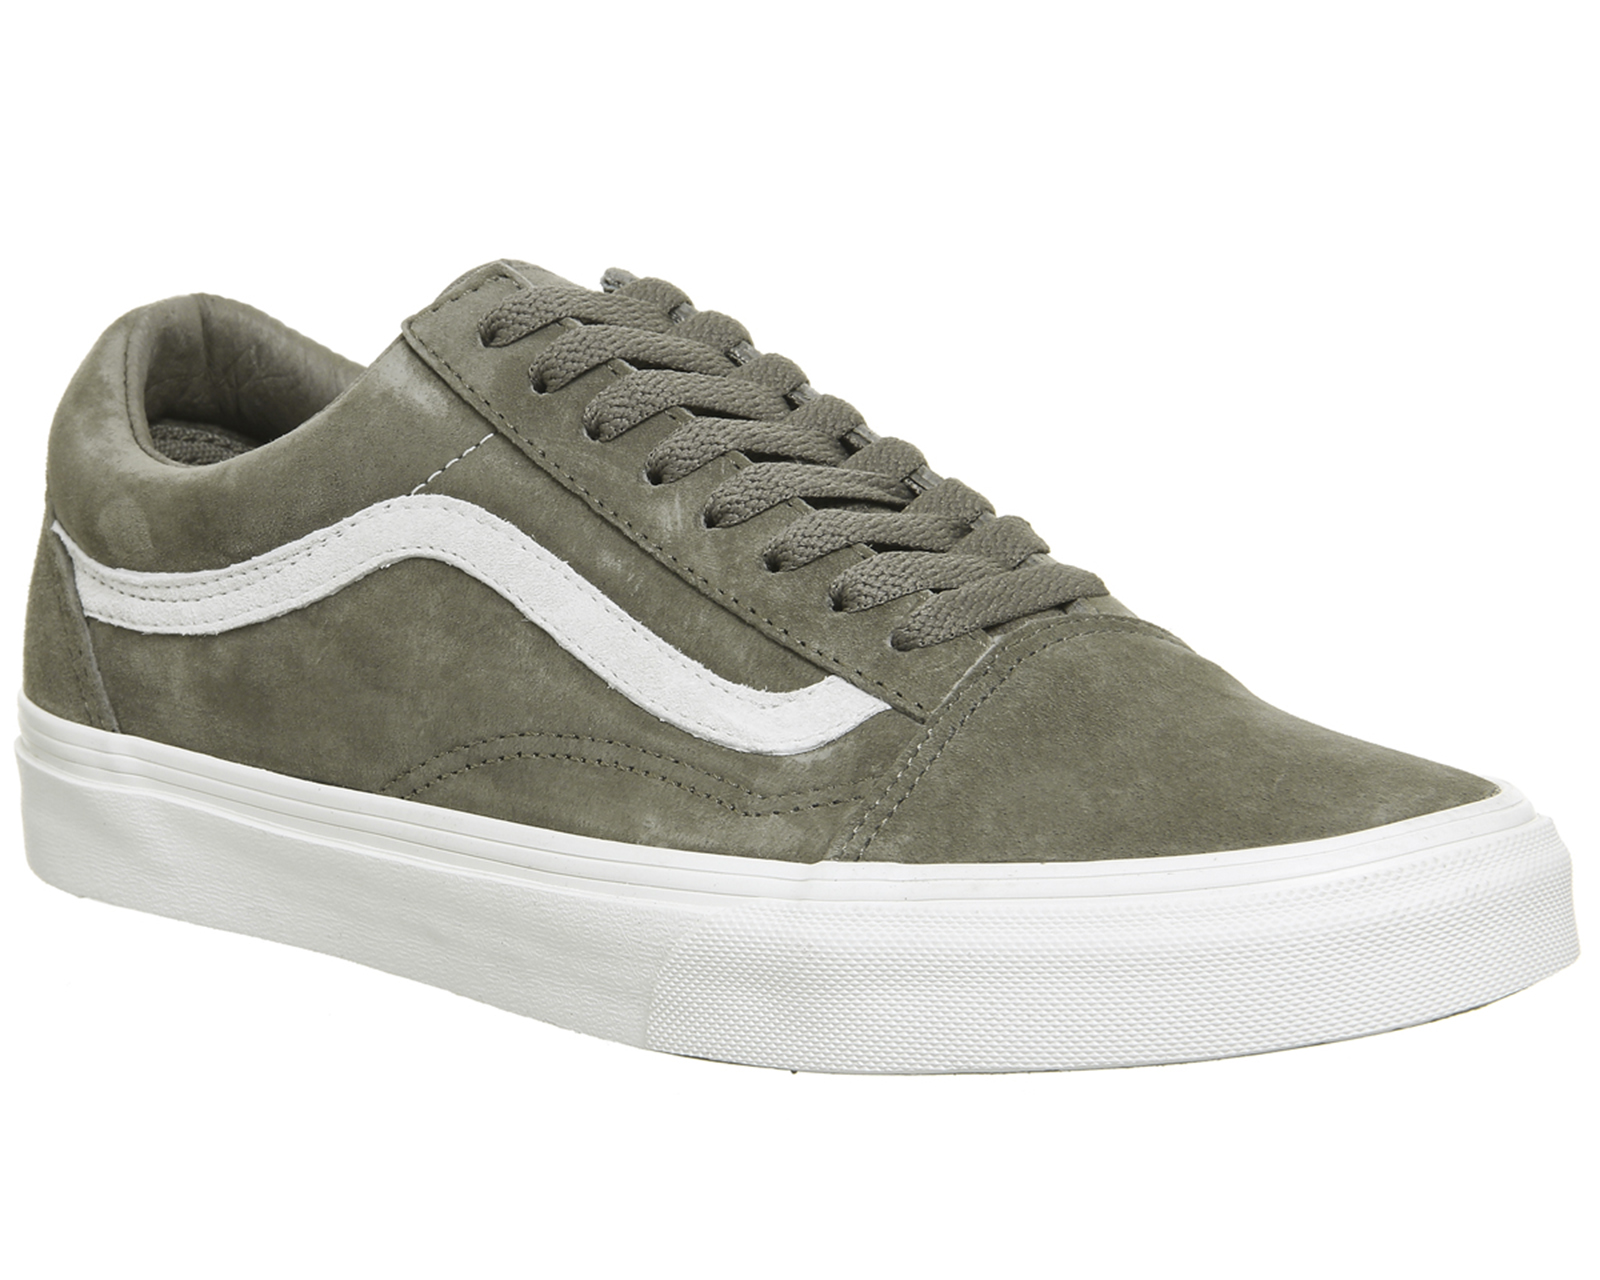 4446365ba28 Sentinel Mens Vans Old Skool Trainers FALLEN ROCK BLANC Trainers Shoes